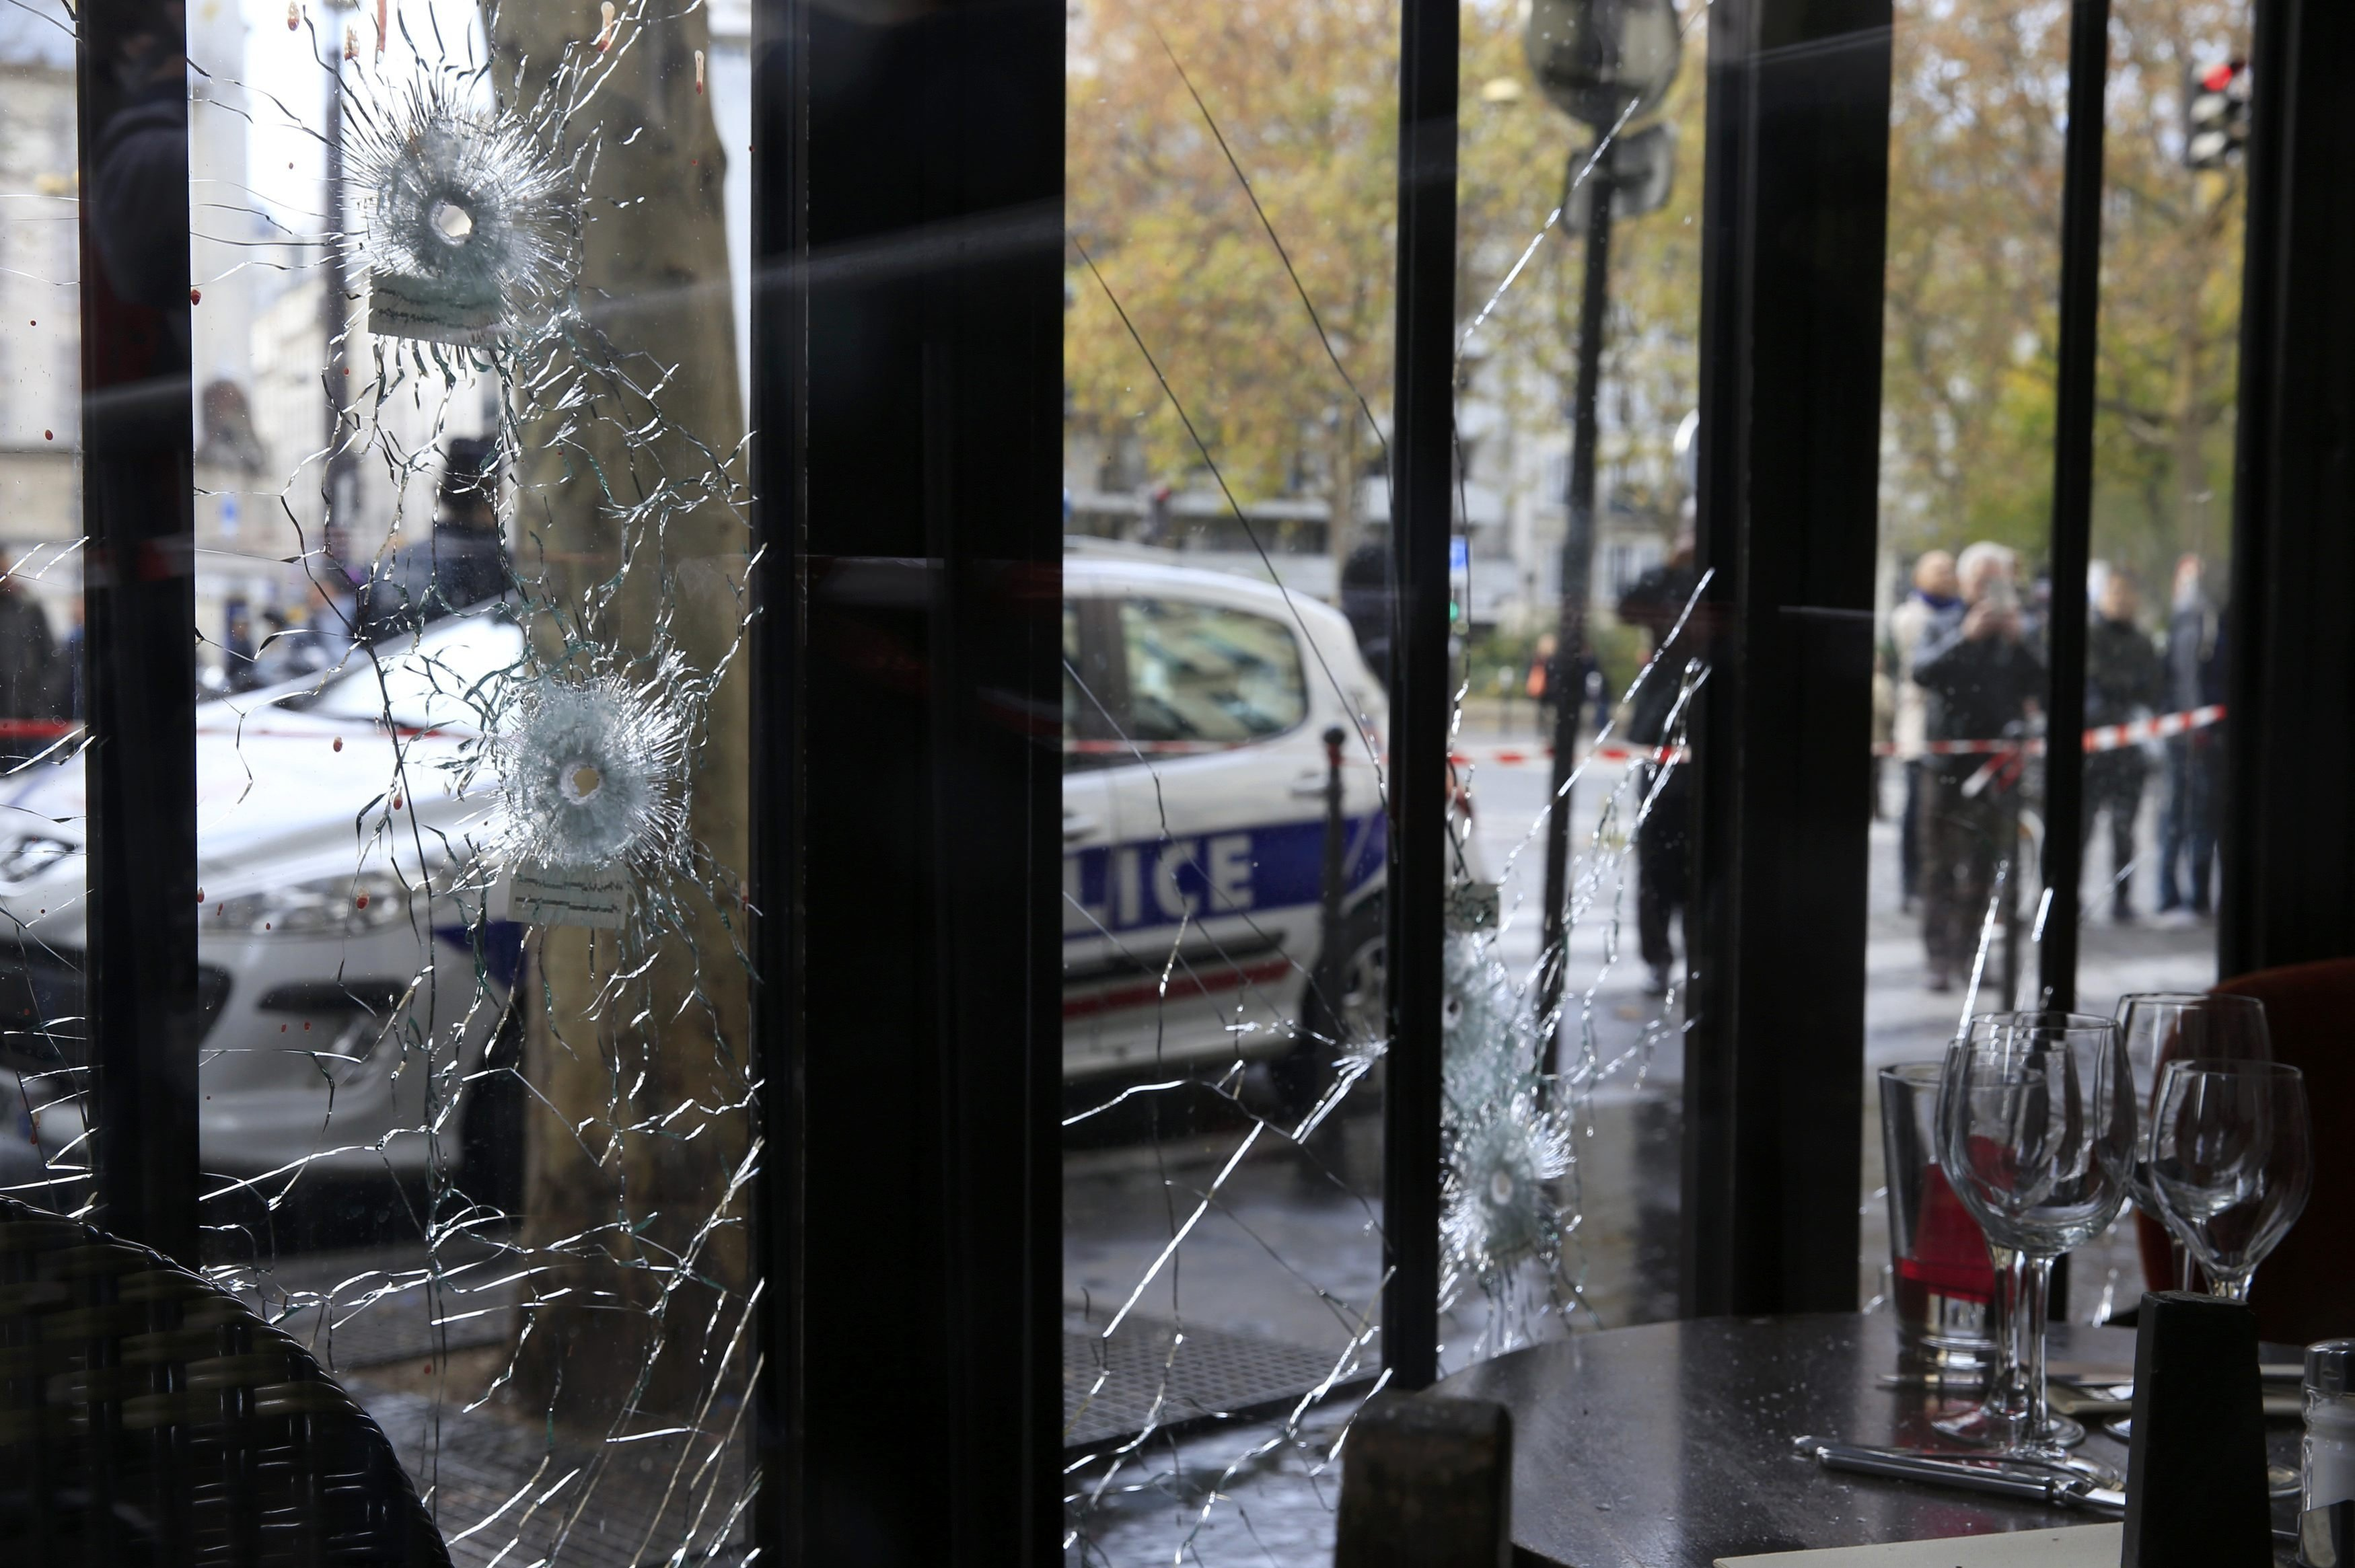 Bullet impacts are seen in the window of a restaurant window the day after a series of deadly attacks in Paris , November 14, 2015